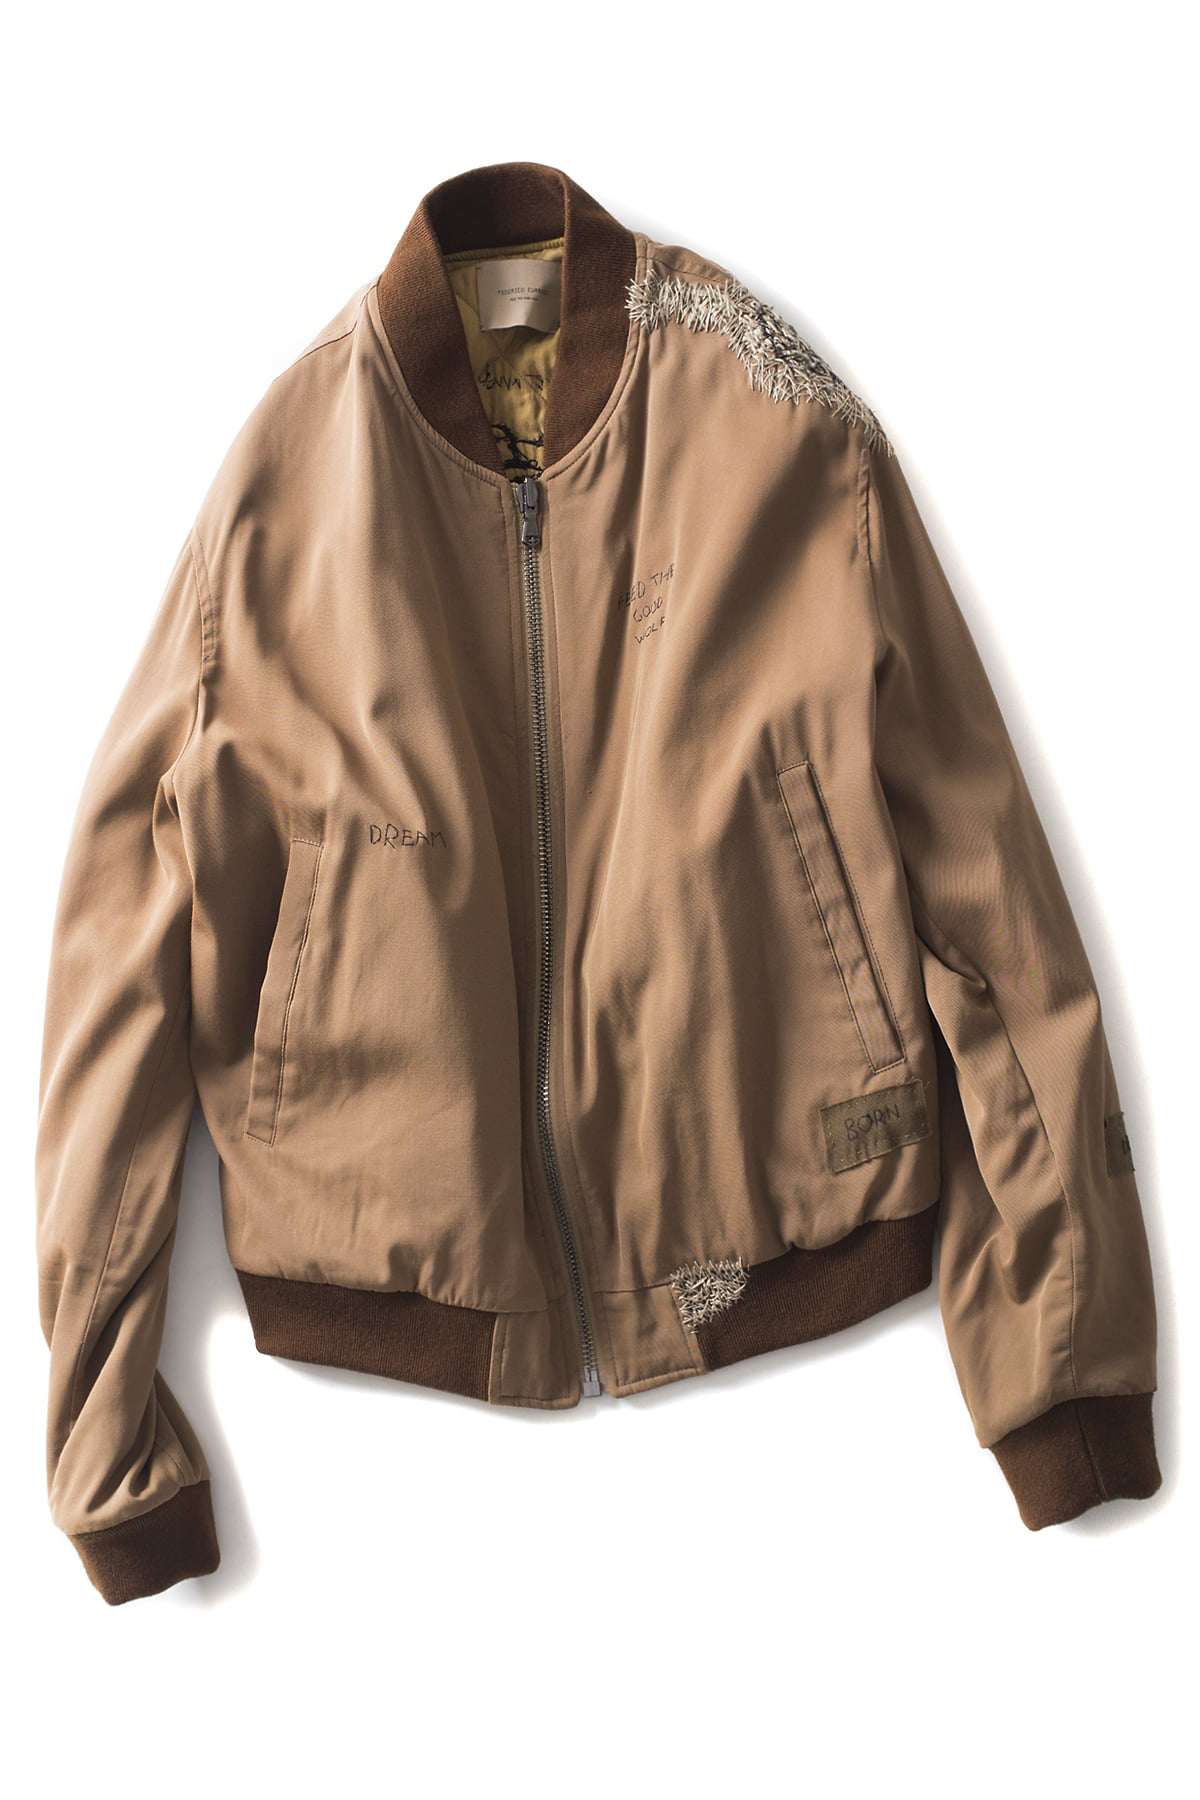 Federico Curradi : Reversible Embroidery Bomber Jacket (Brown)